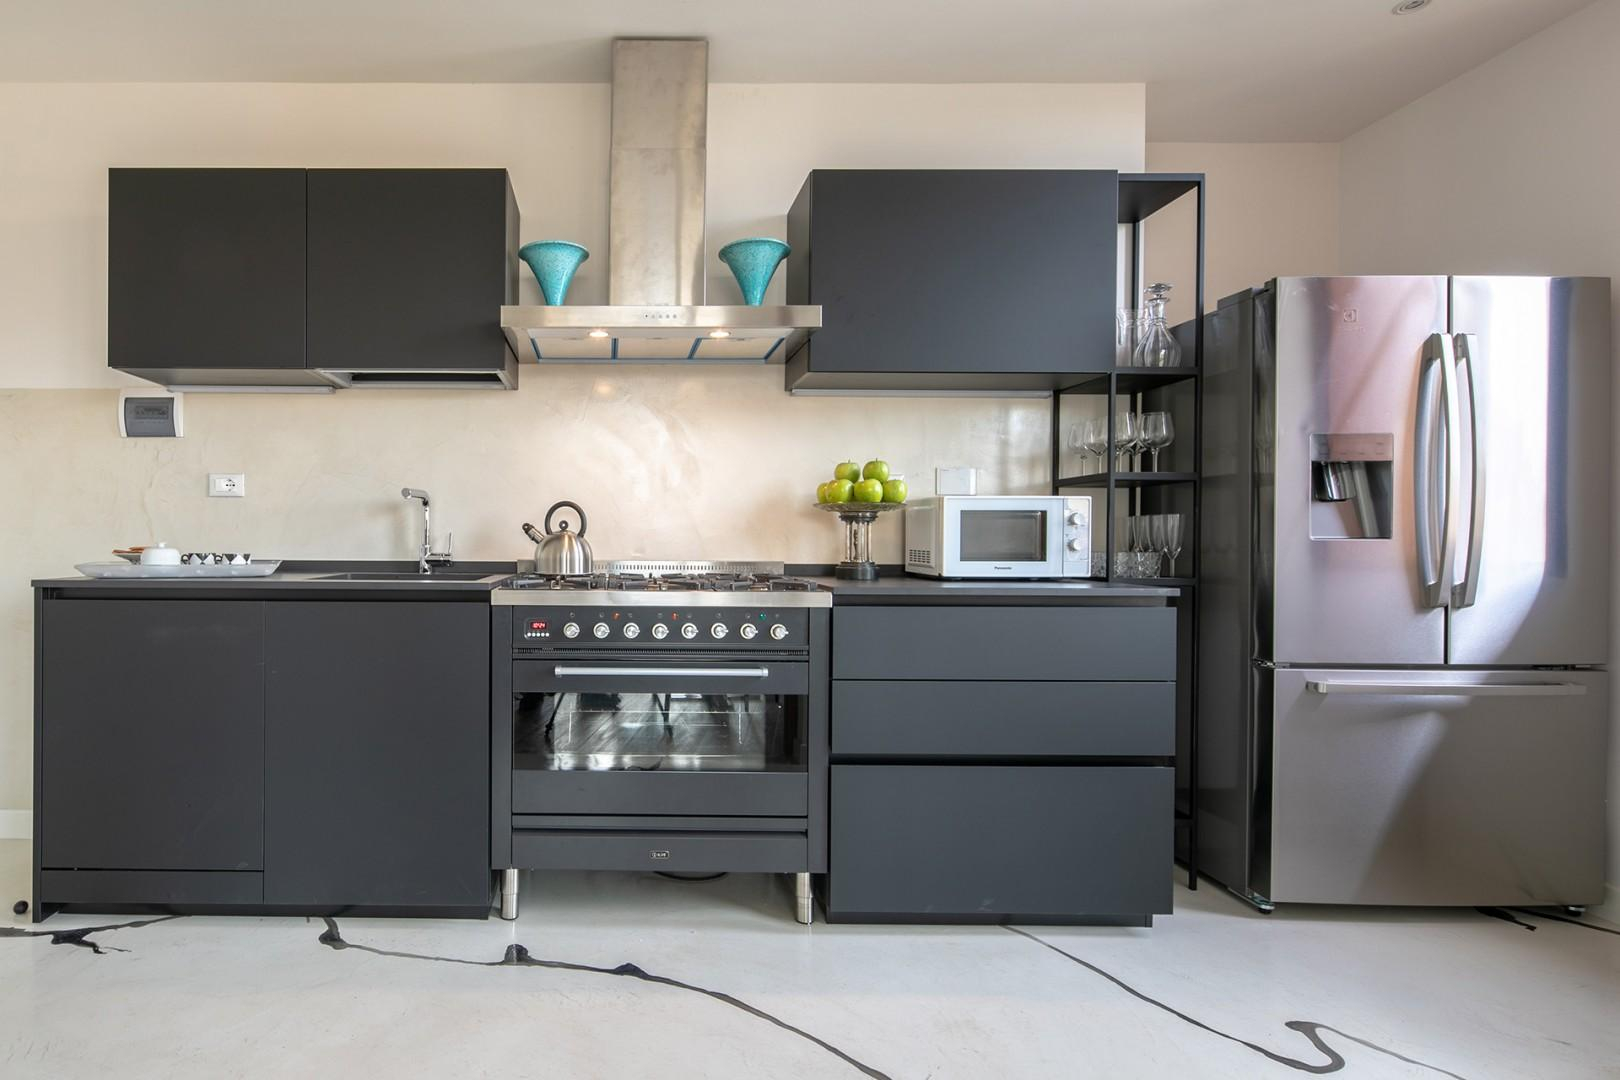 Bright modern kitchen with full-size refrigerator and six-burner stove.